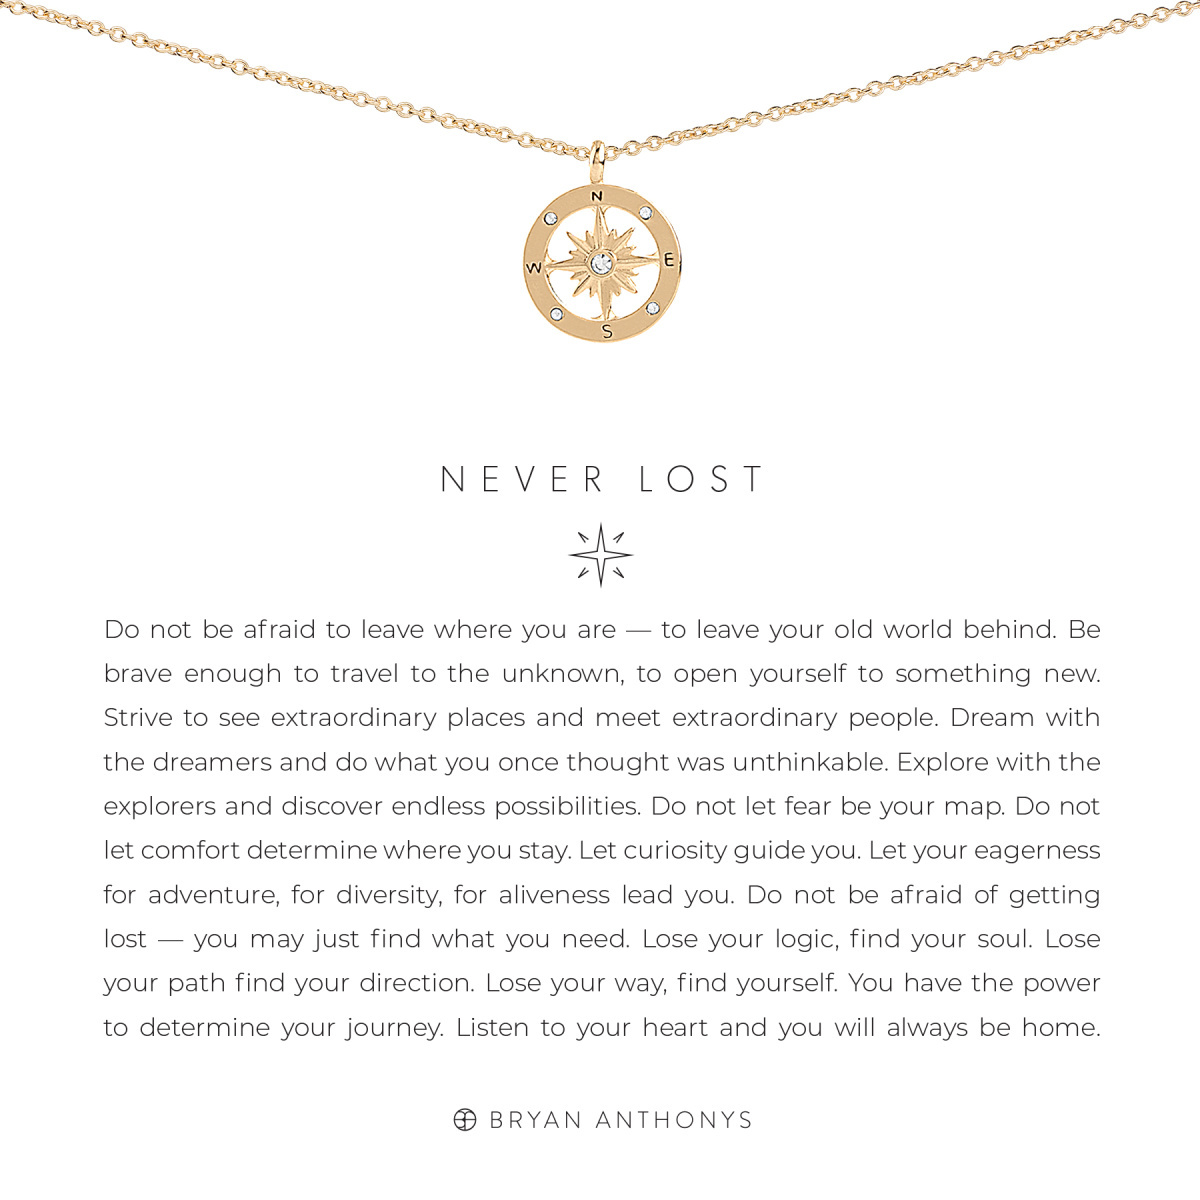 Bryan Anthonys Bryan Anthonys Never Lost Necklace